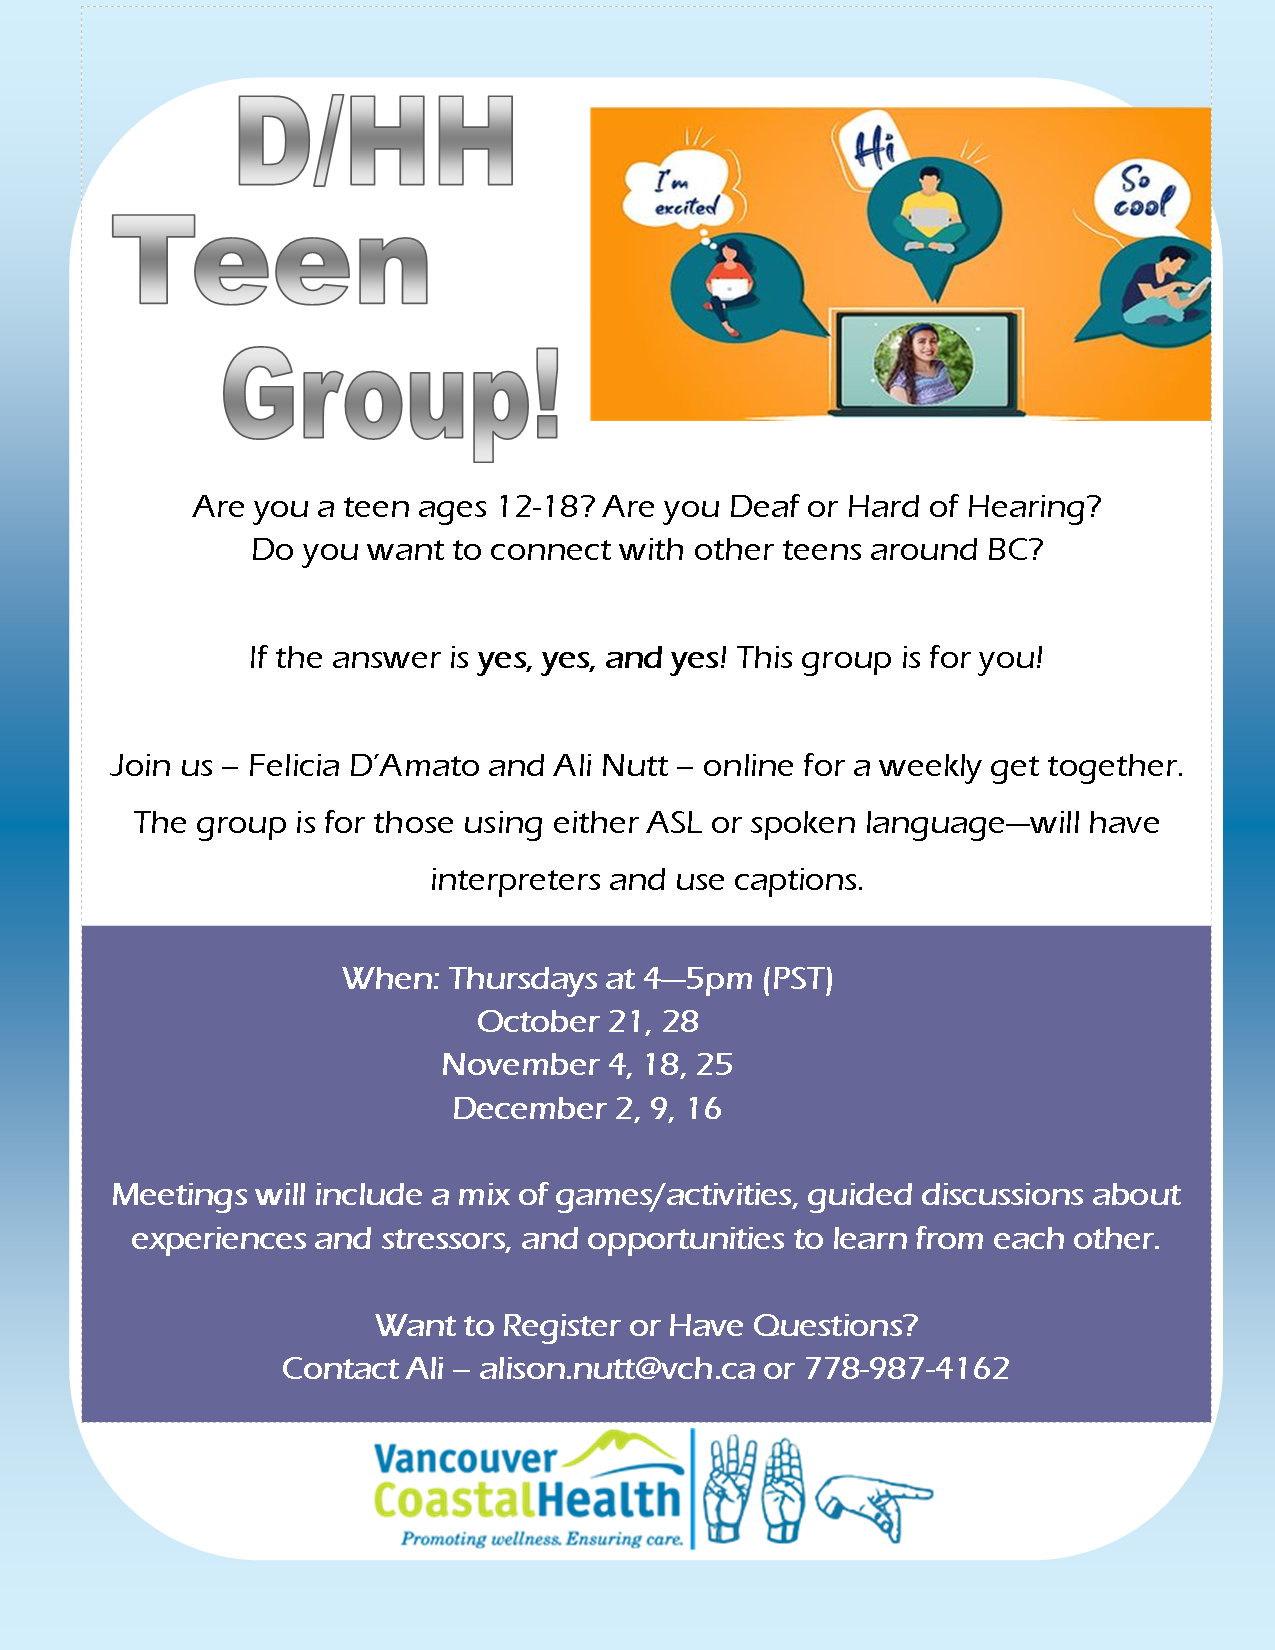 Flyer about Deaf and Hard of Hearing Teen Group